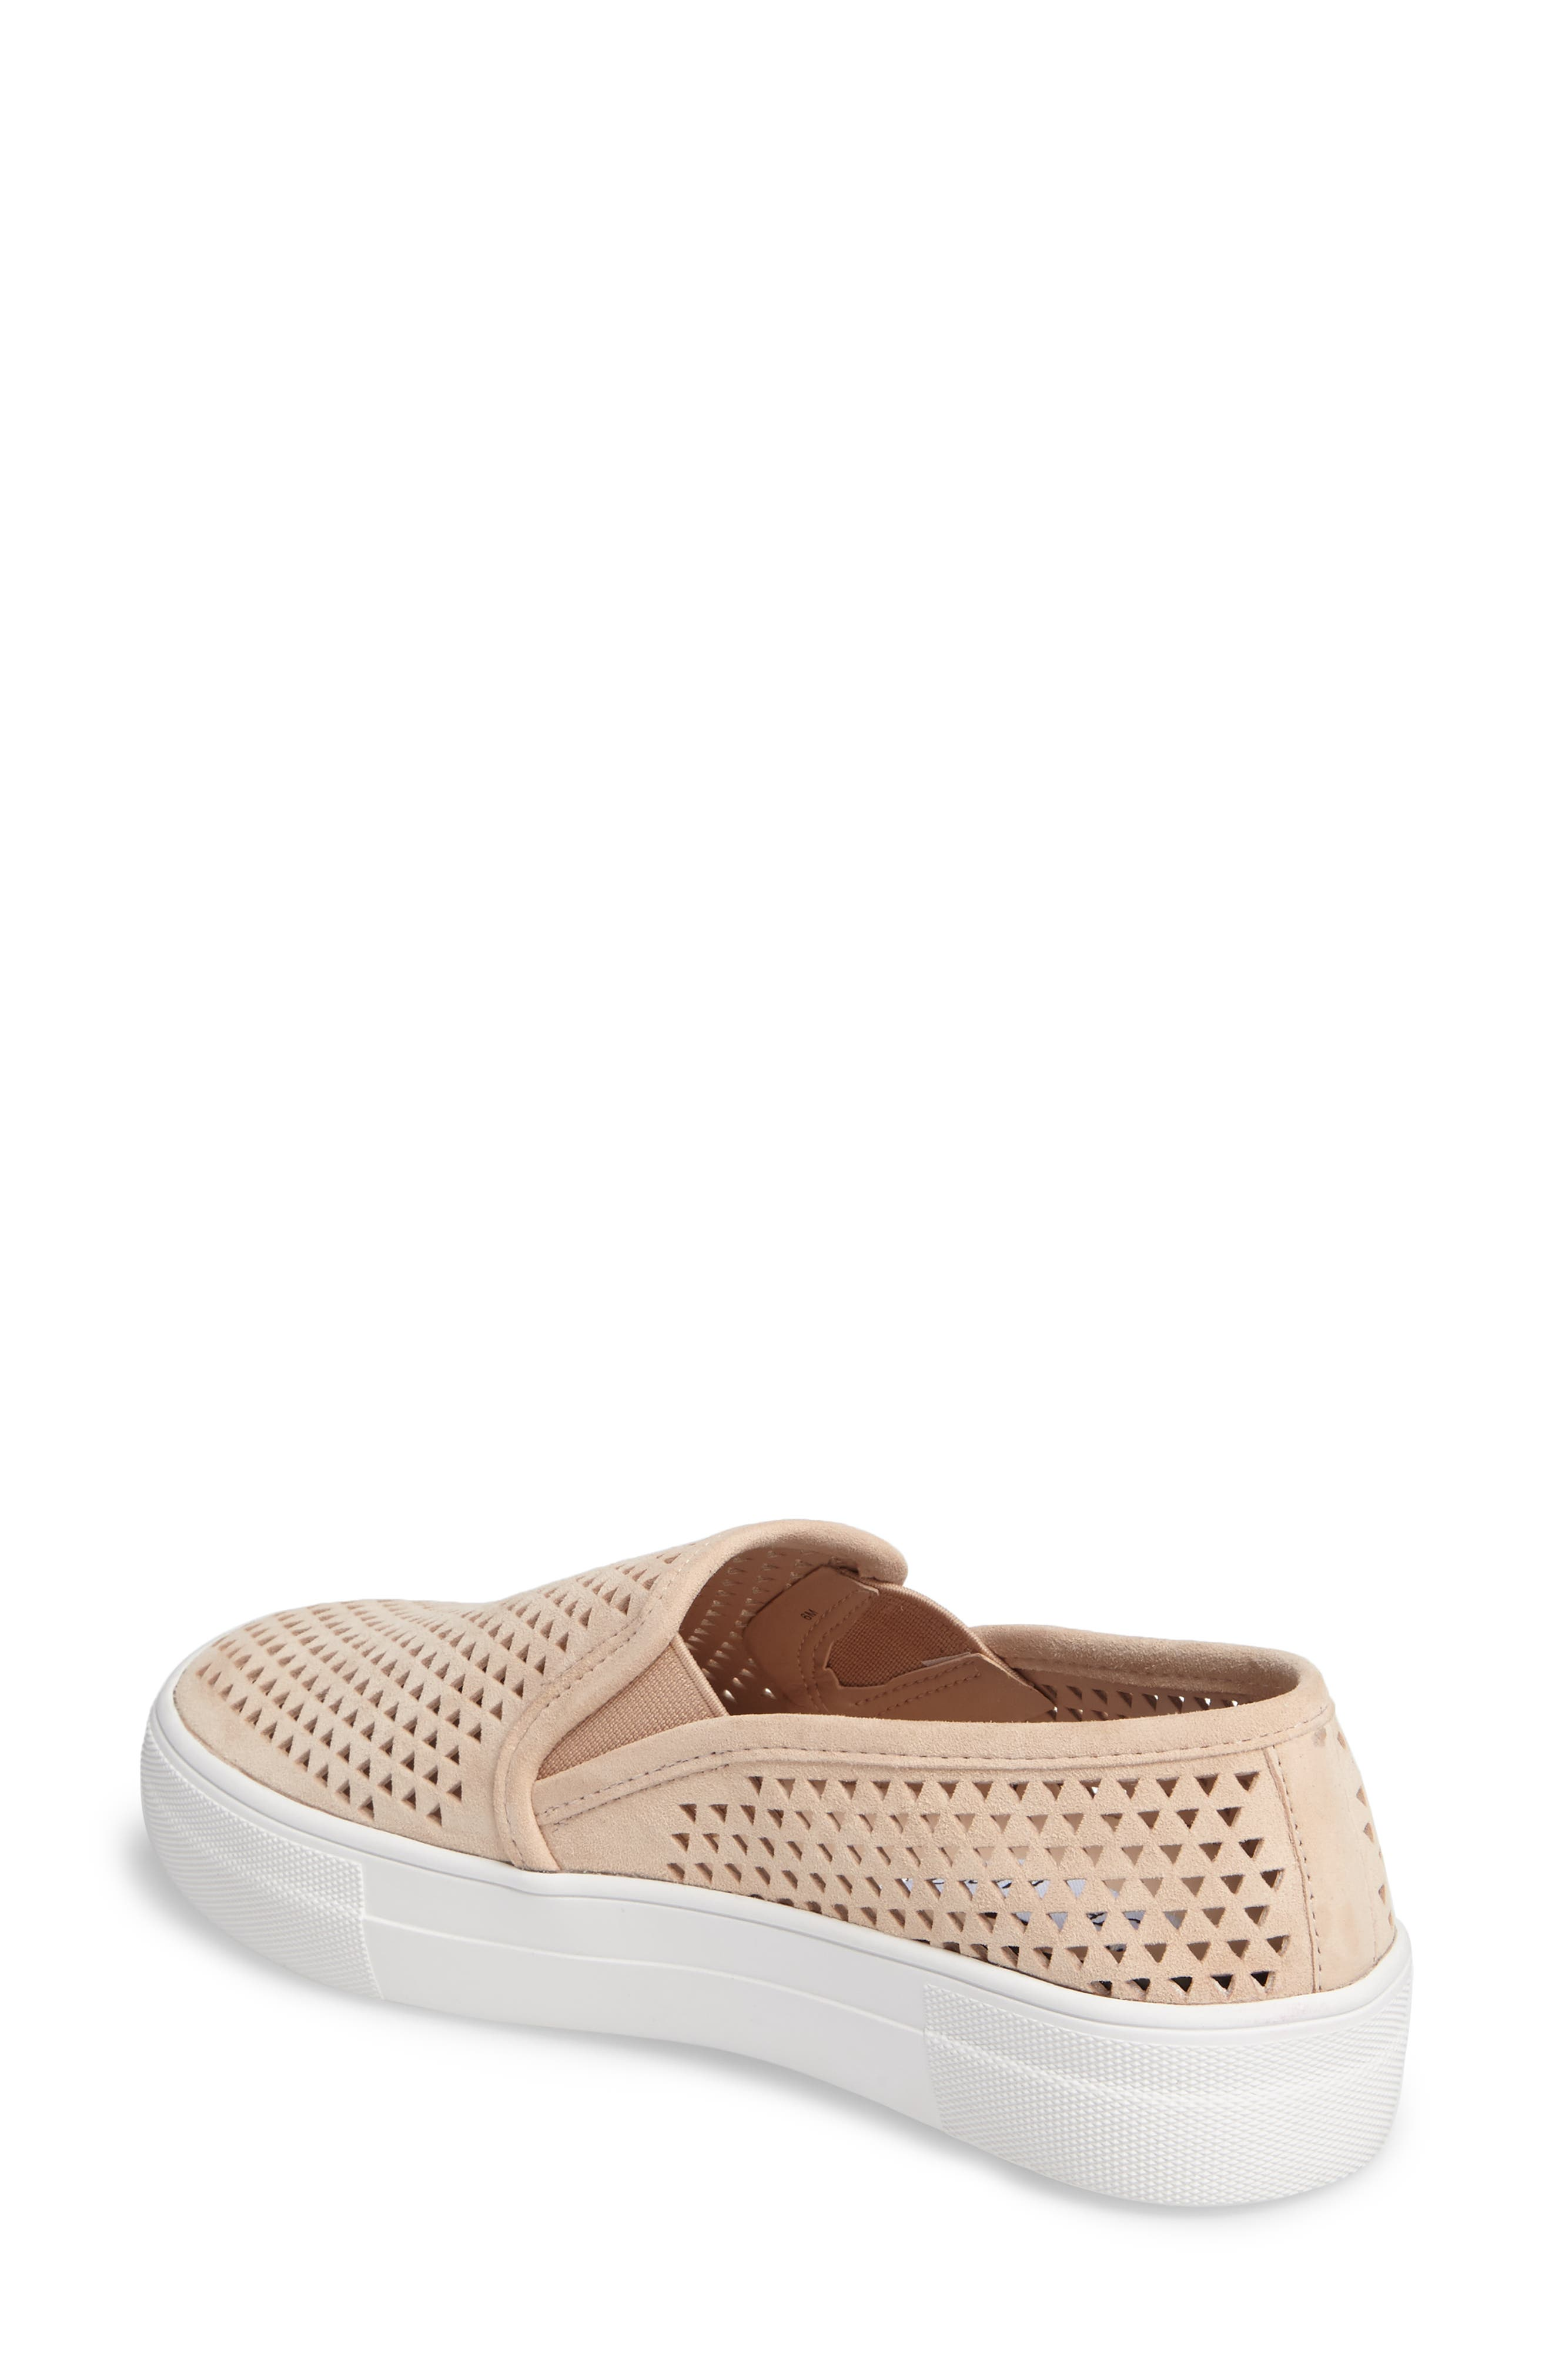 Gills Perforated Slip-On Sneaker,                             Alternate thumbnail 2, color,                             Natural Suede